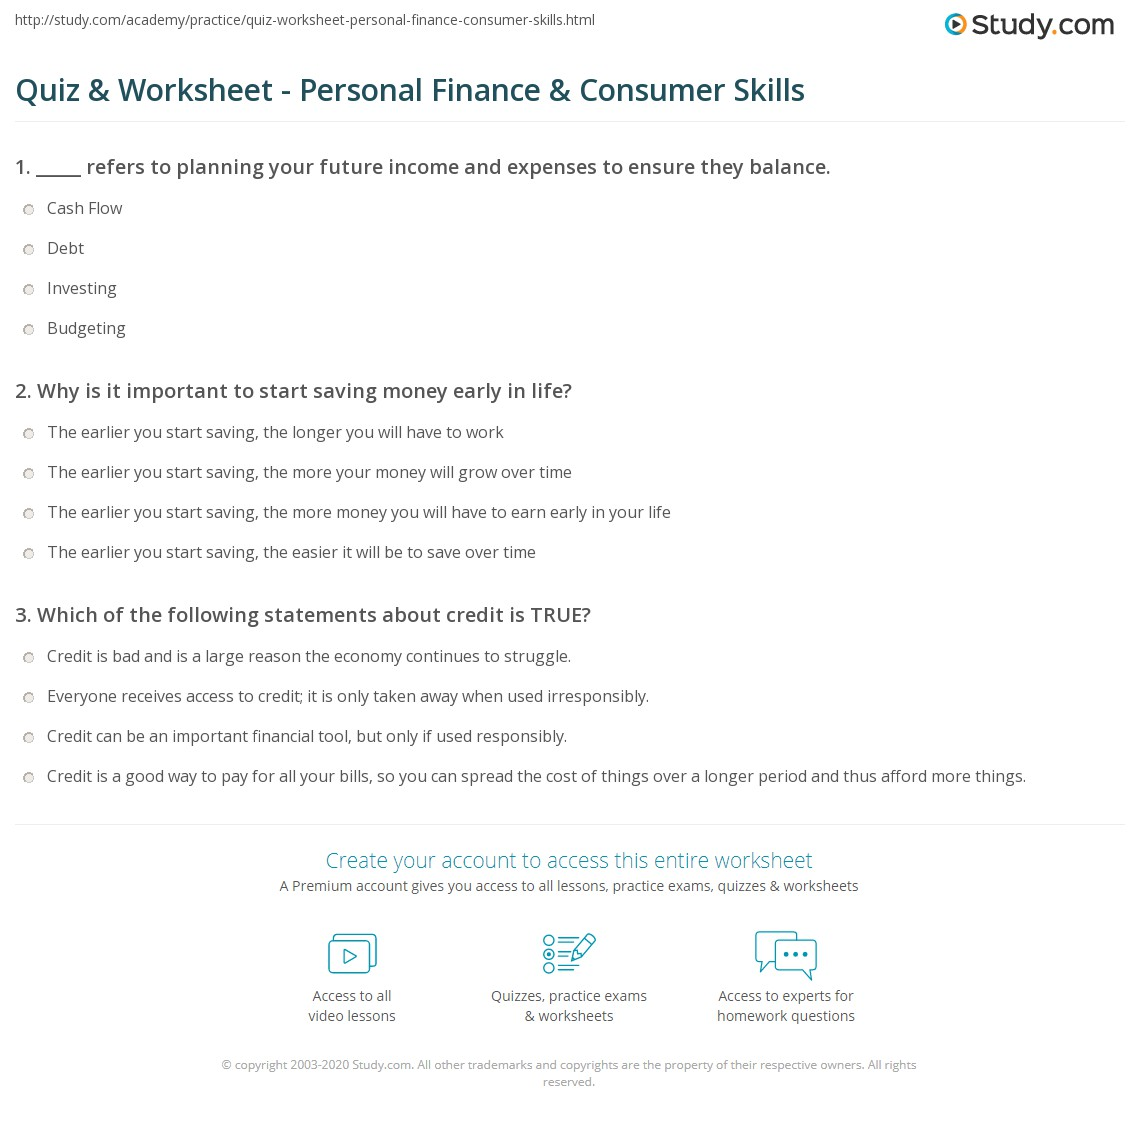 quiz worksheet personal finance consumer skills study com